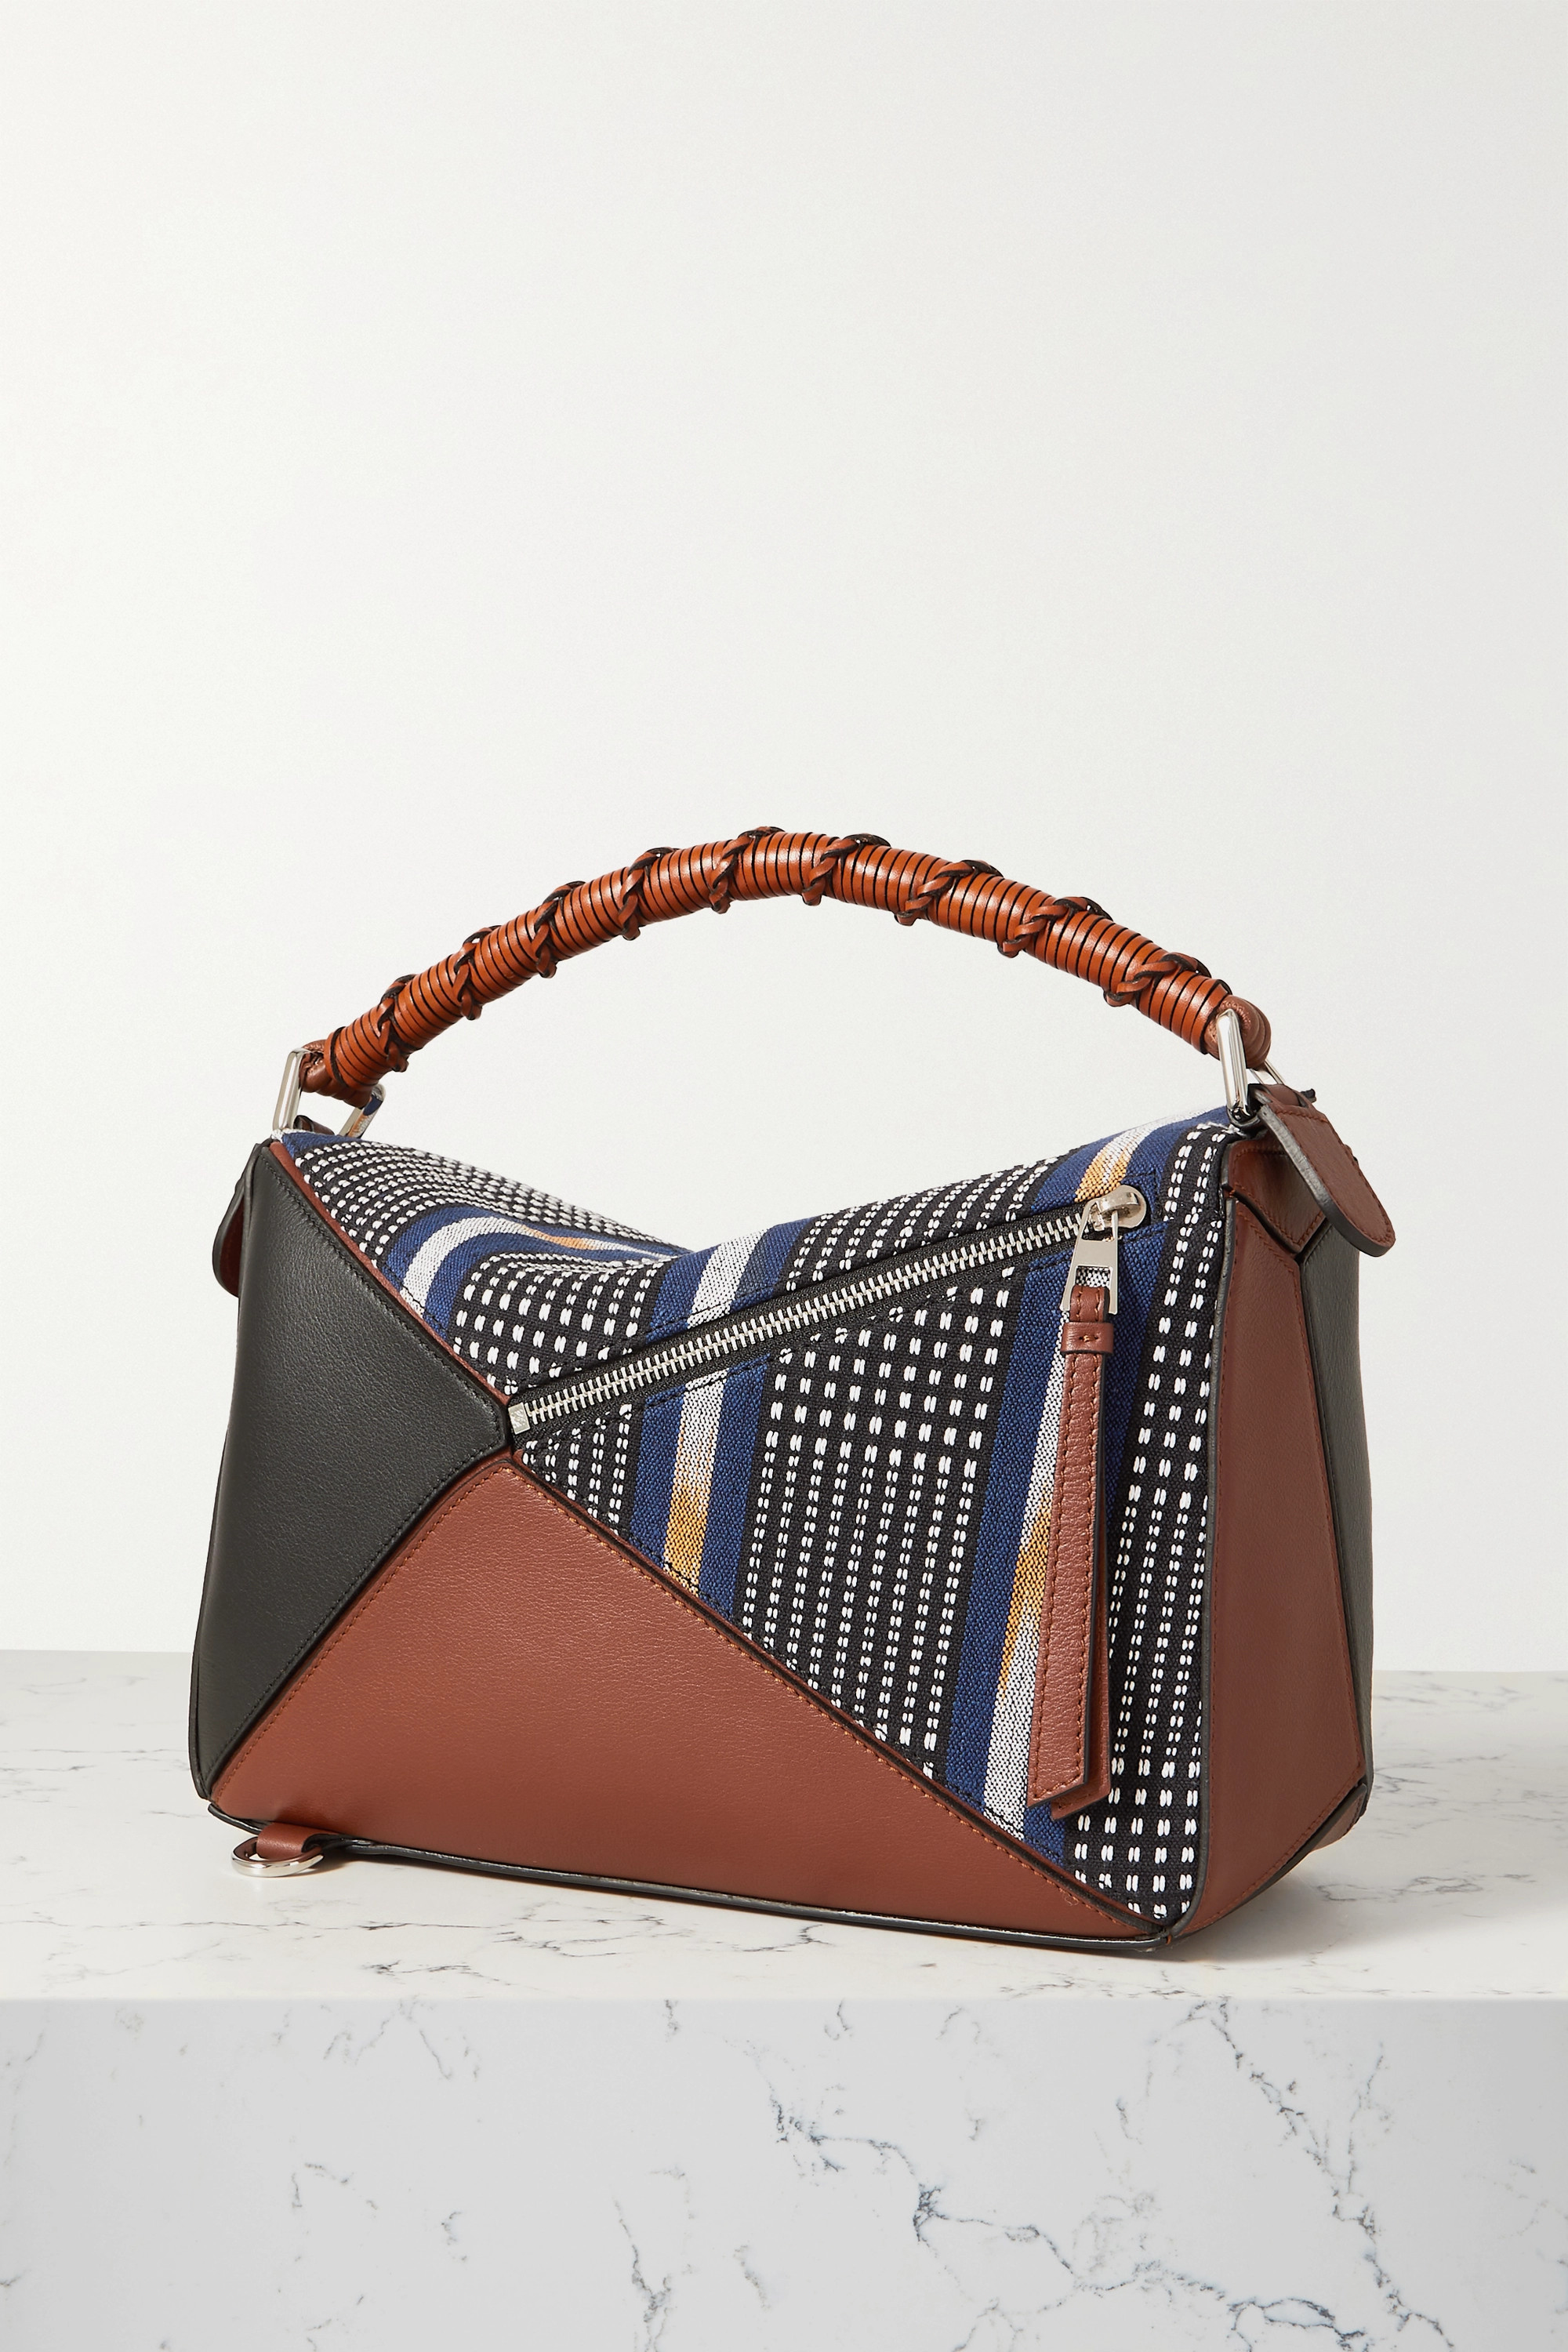 Loewe + Paula's Ibiza Puzzle Craft patchwork leather and canvas shoulder bag